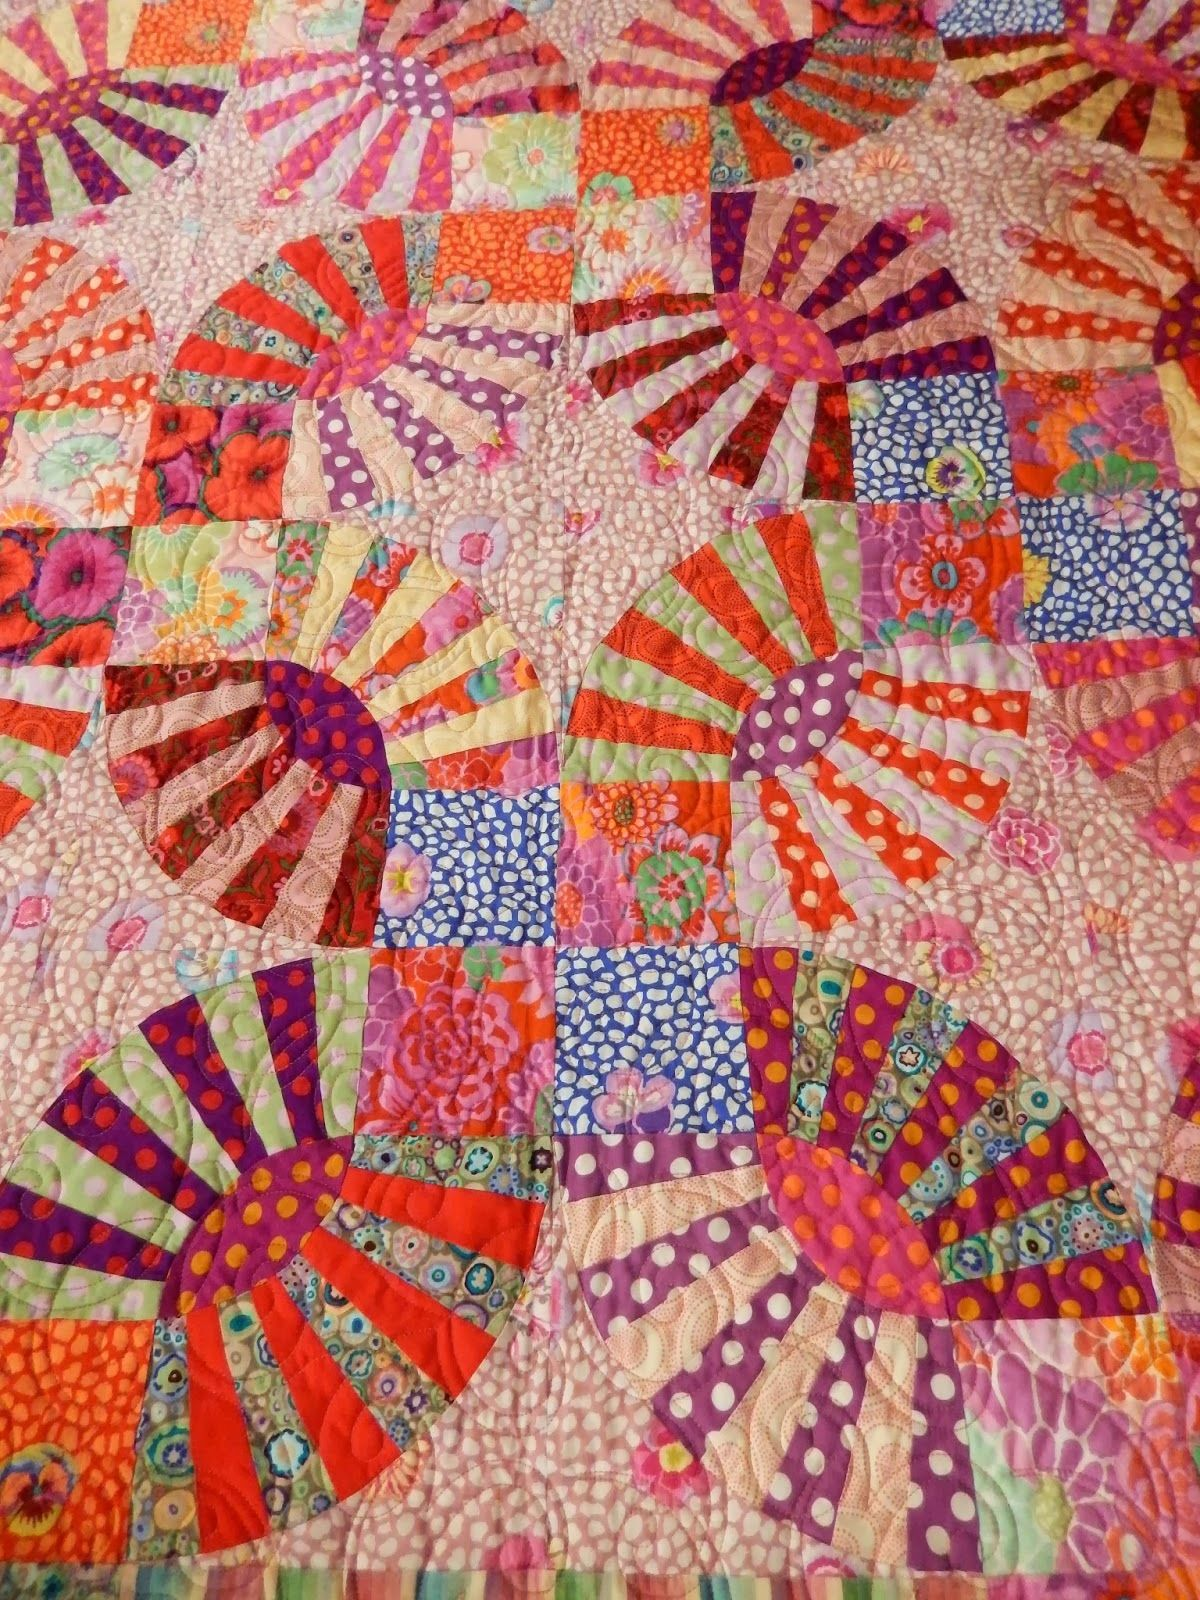 Zip-A-Dee-Do-Da by Barbara Molnar, quilted by Marlene Williams ...